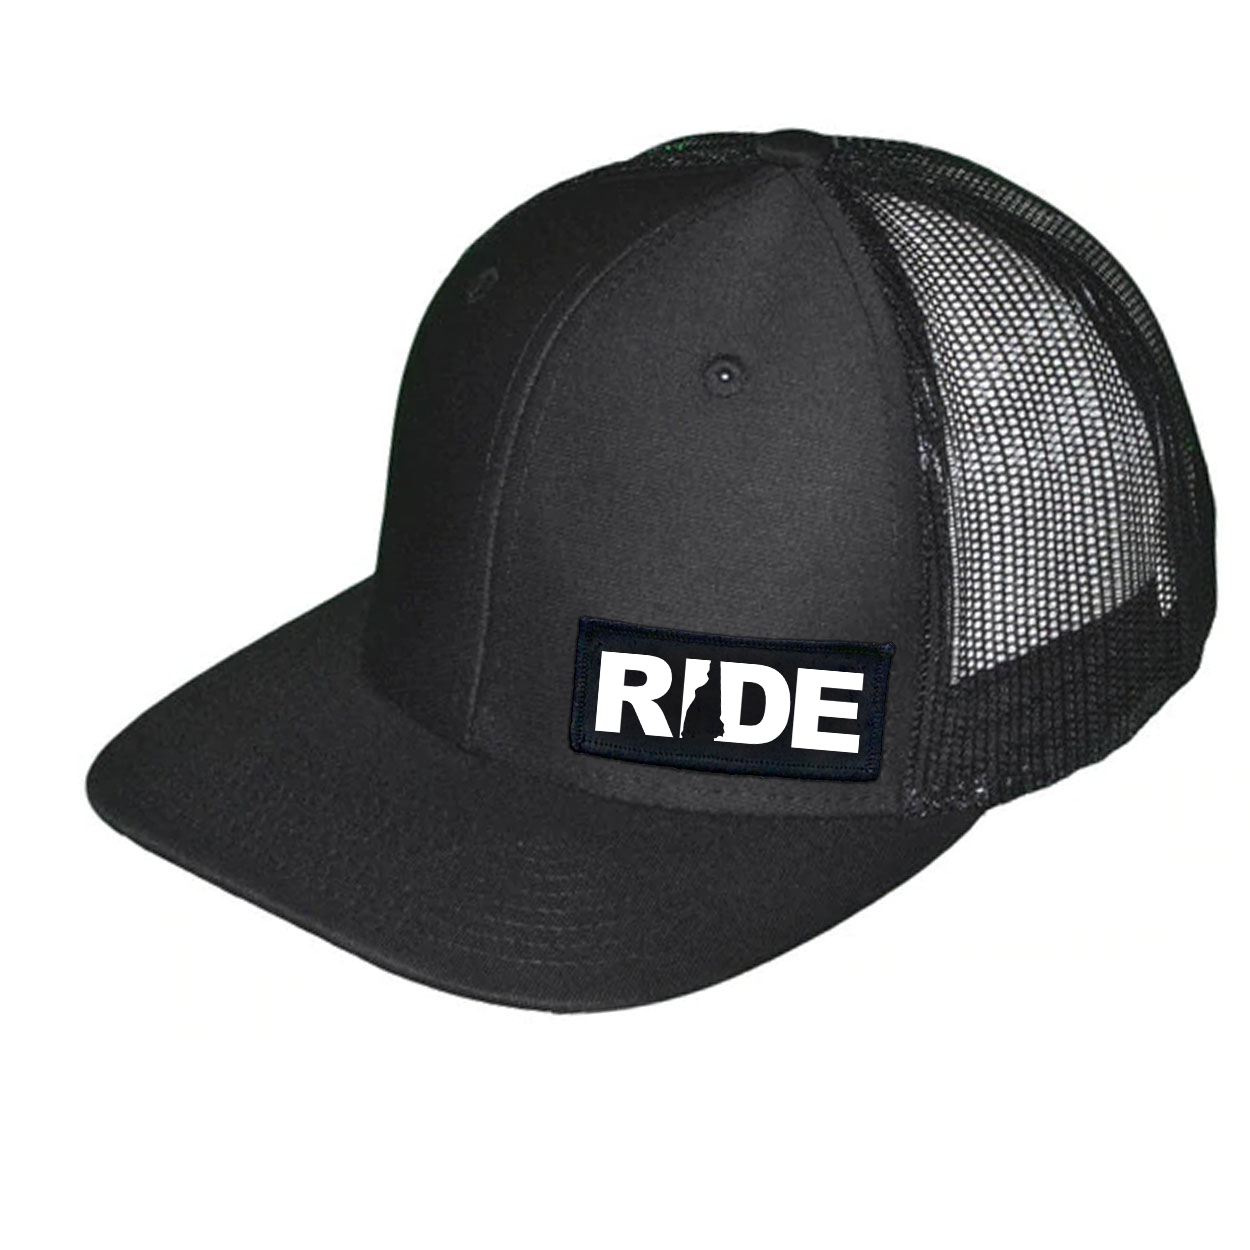 Ride New Hampshire Night Out Woven Patch Snapback Trucker Hat Black (White Logo)